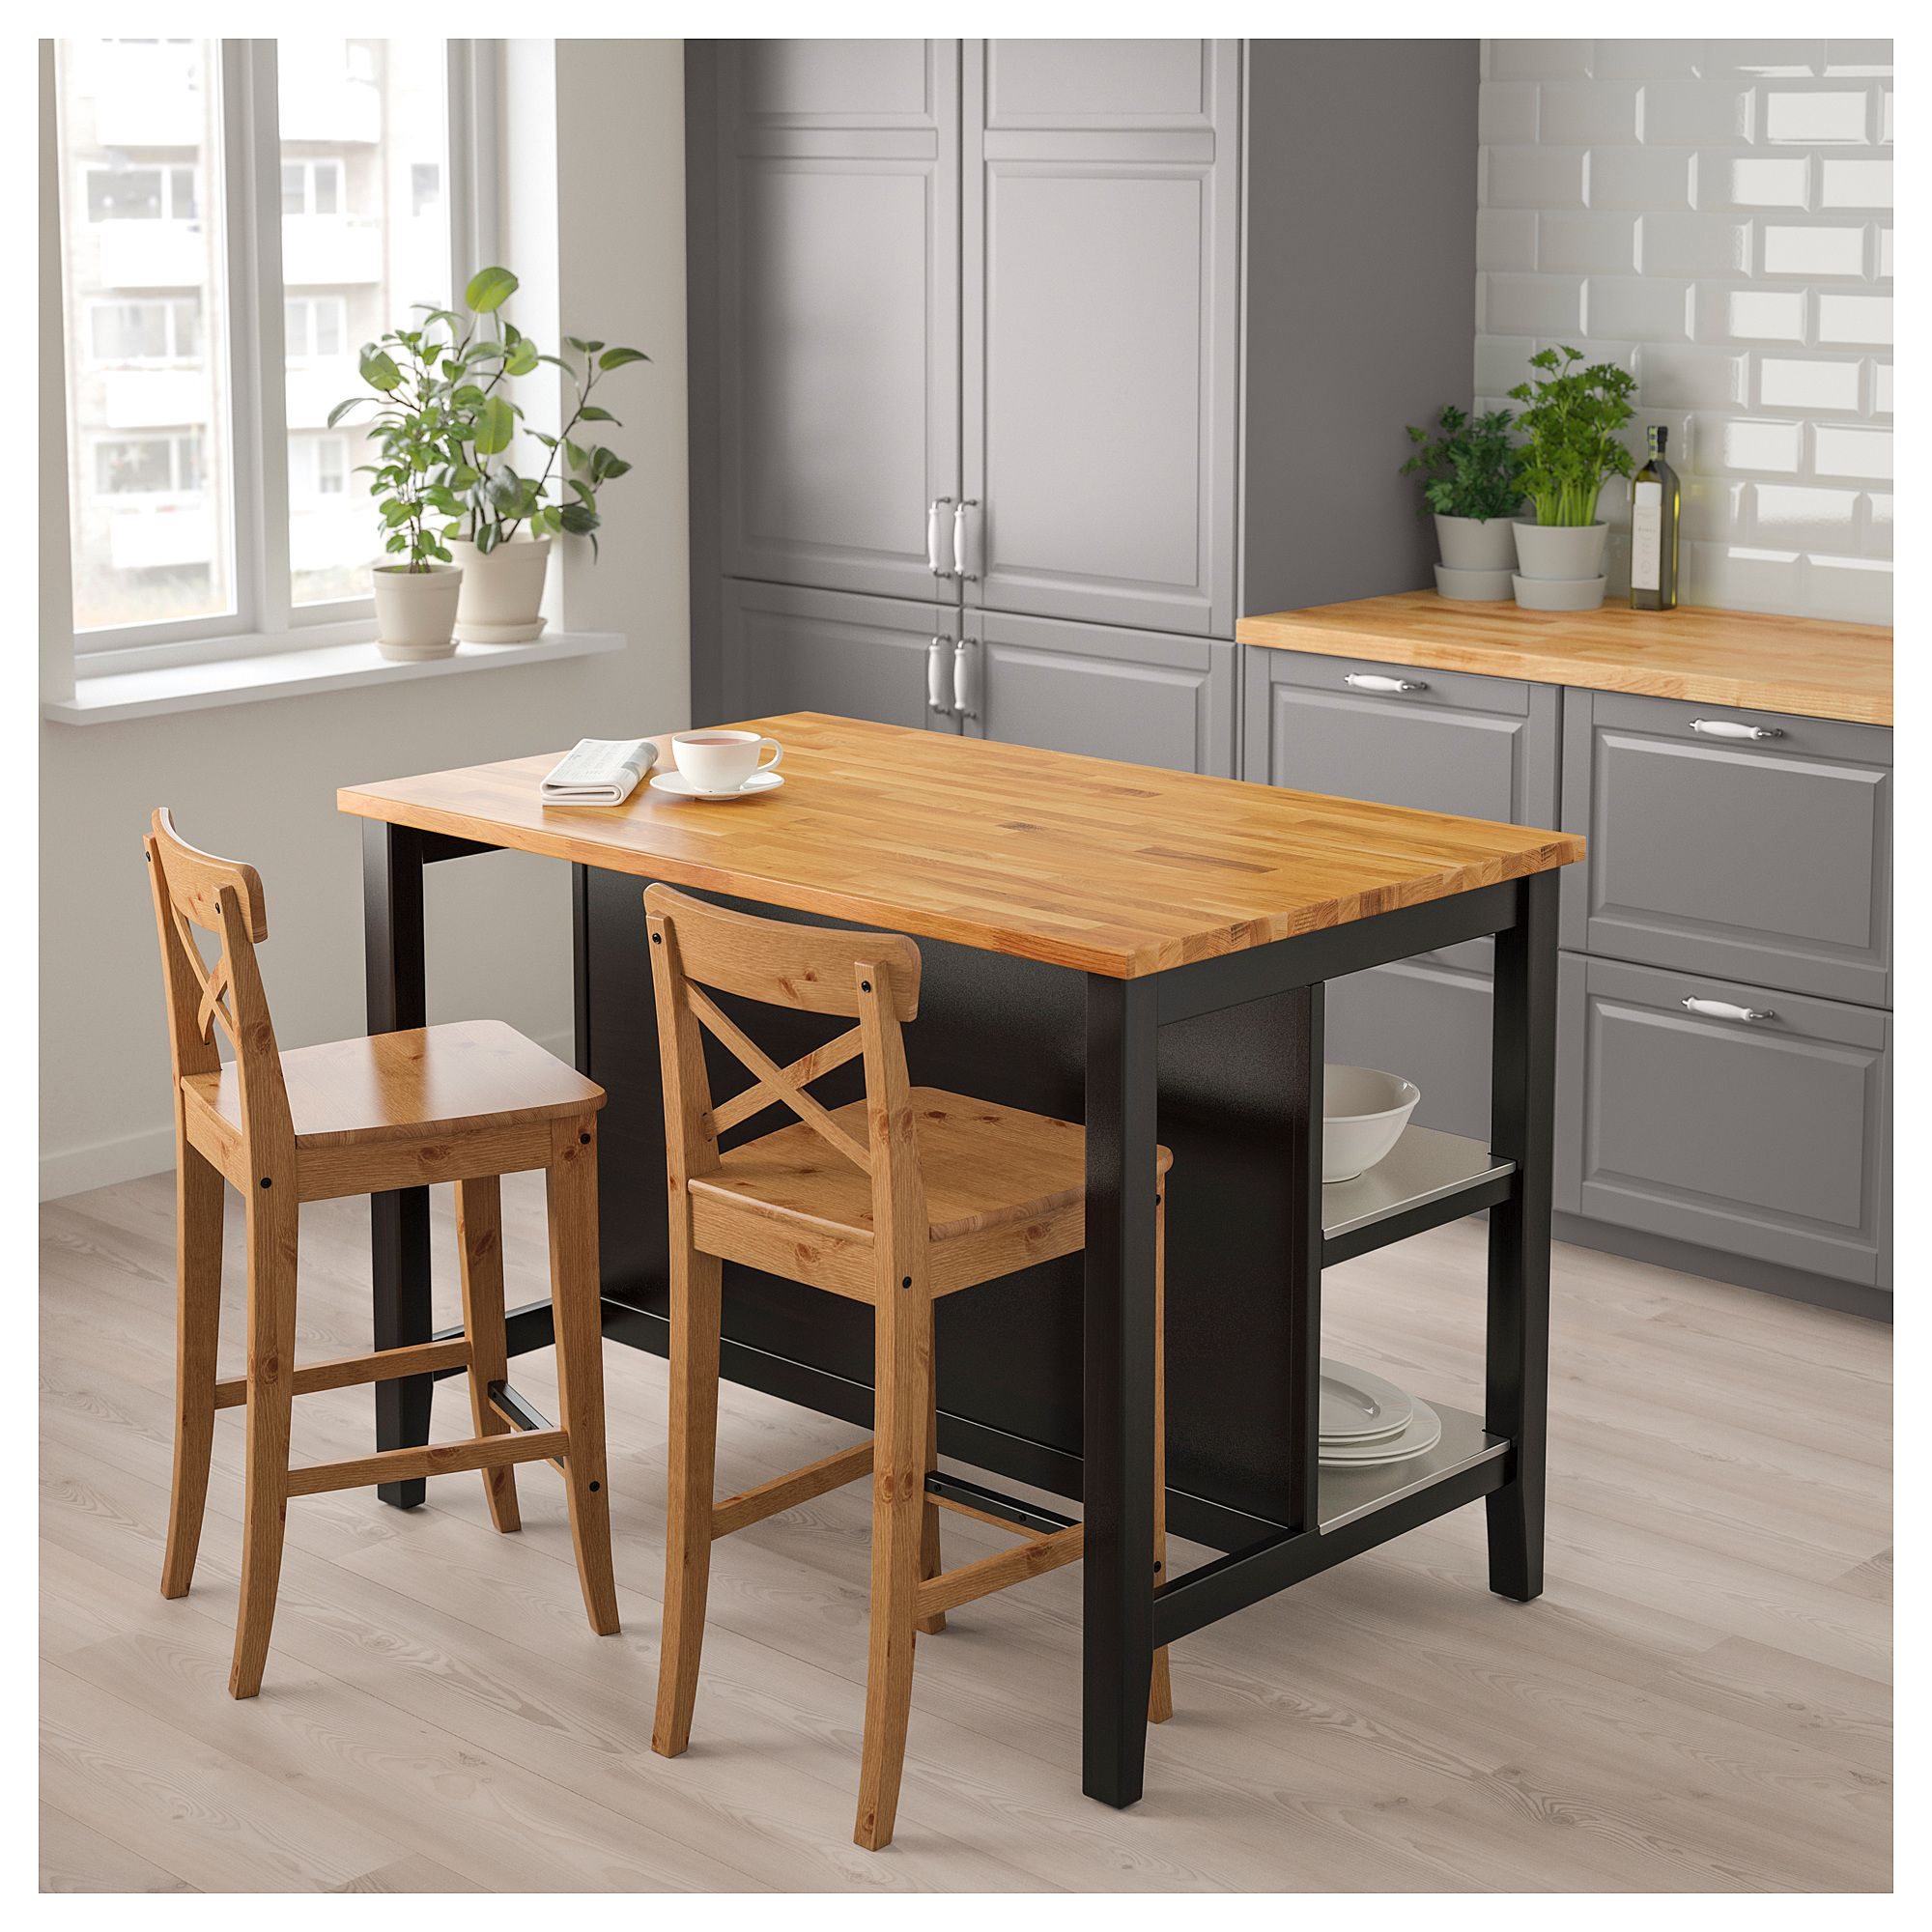 Kitchen Island Stools Ikea: STENSTORP Kitchen Island Black-brown, Oak